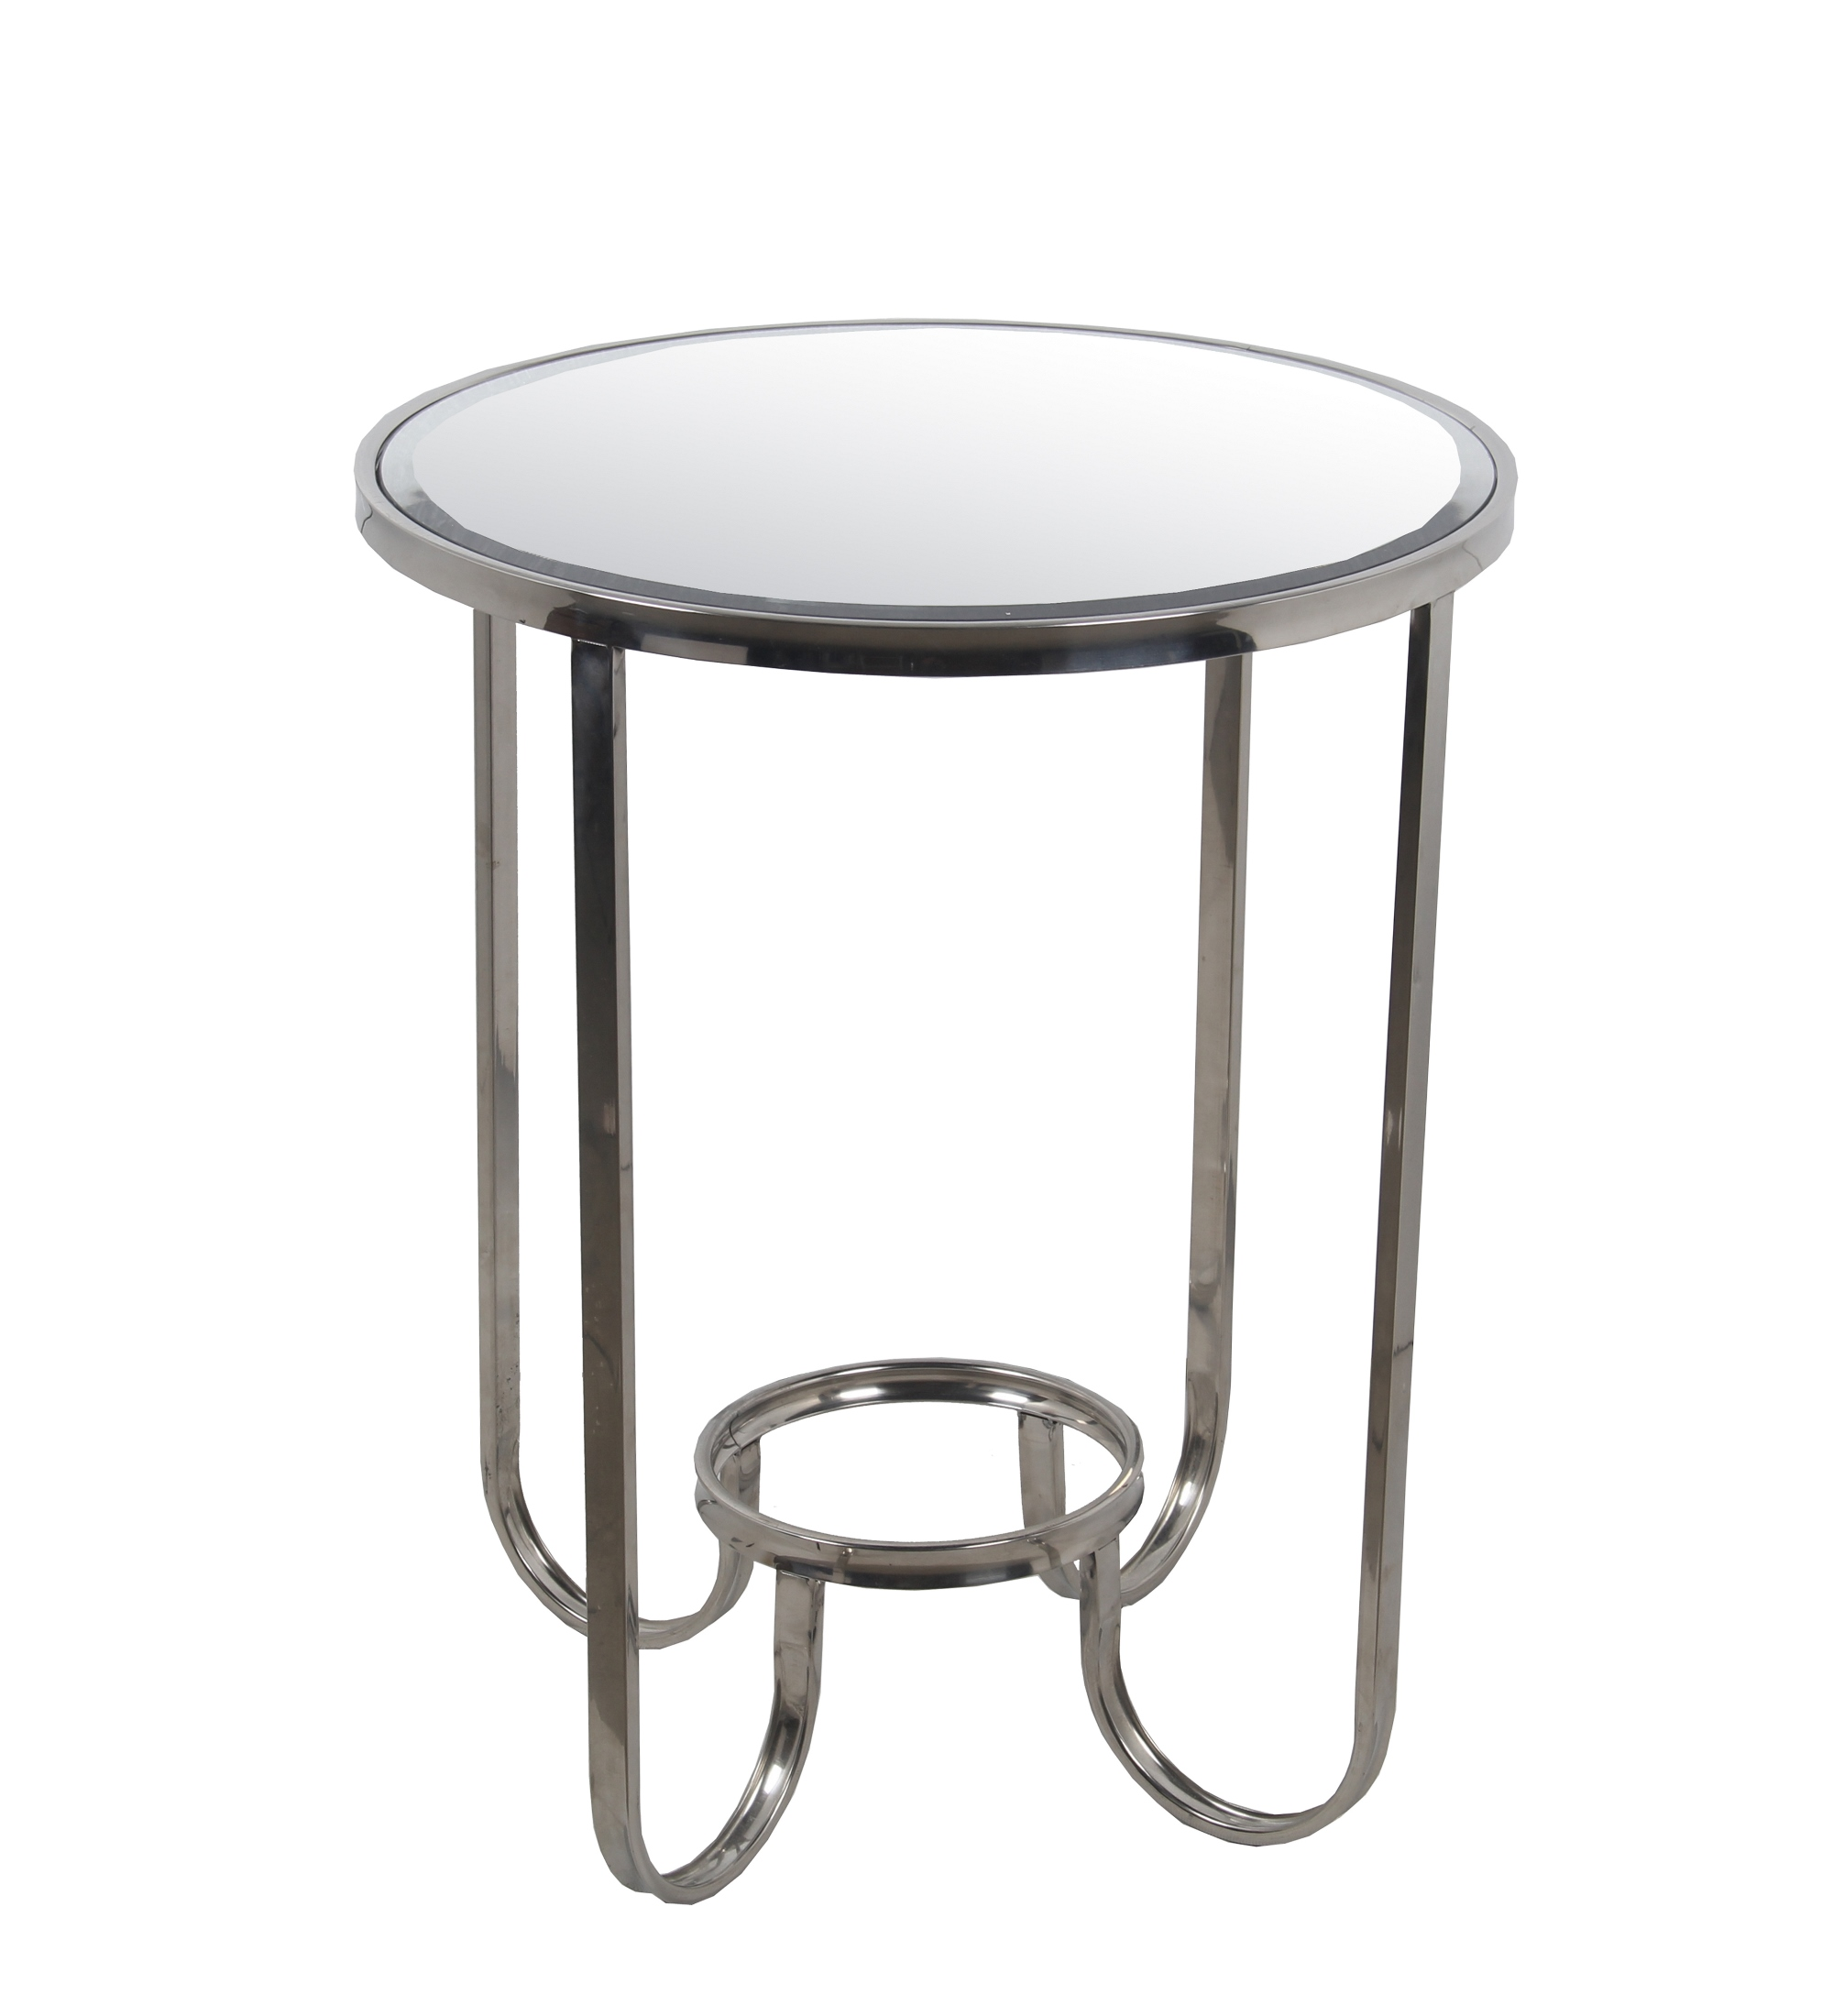 privilege accent table steel contemporary side tables and industrial chic end zeckos pier one bedside tiffany peacock floor lamp furniture square coffee with storage solid wood